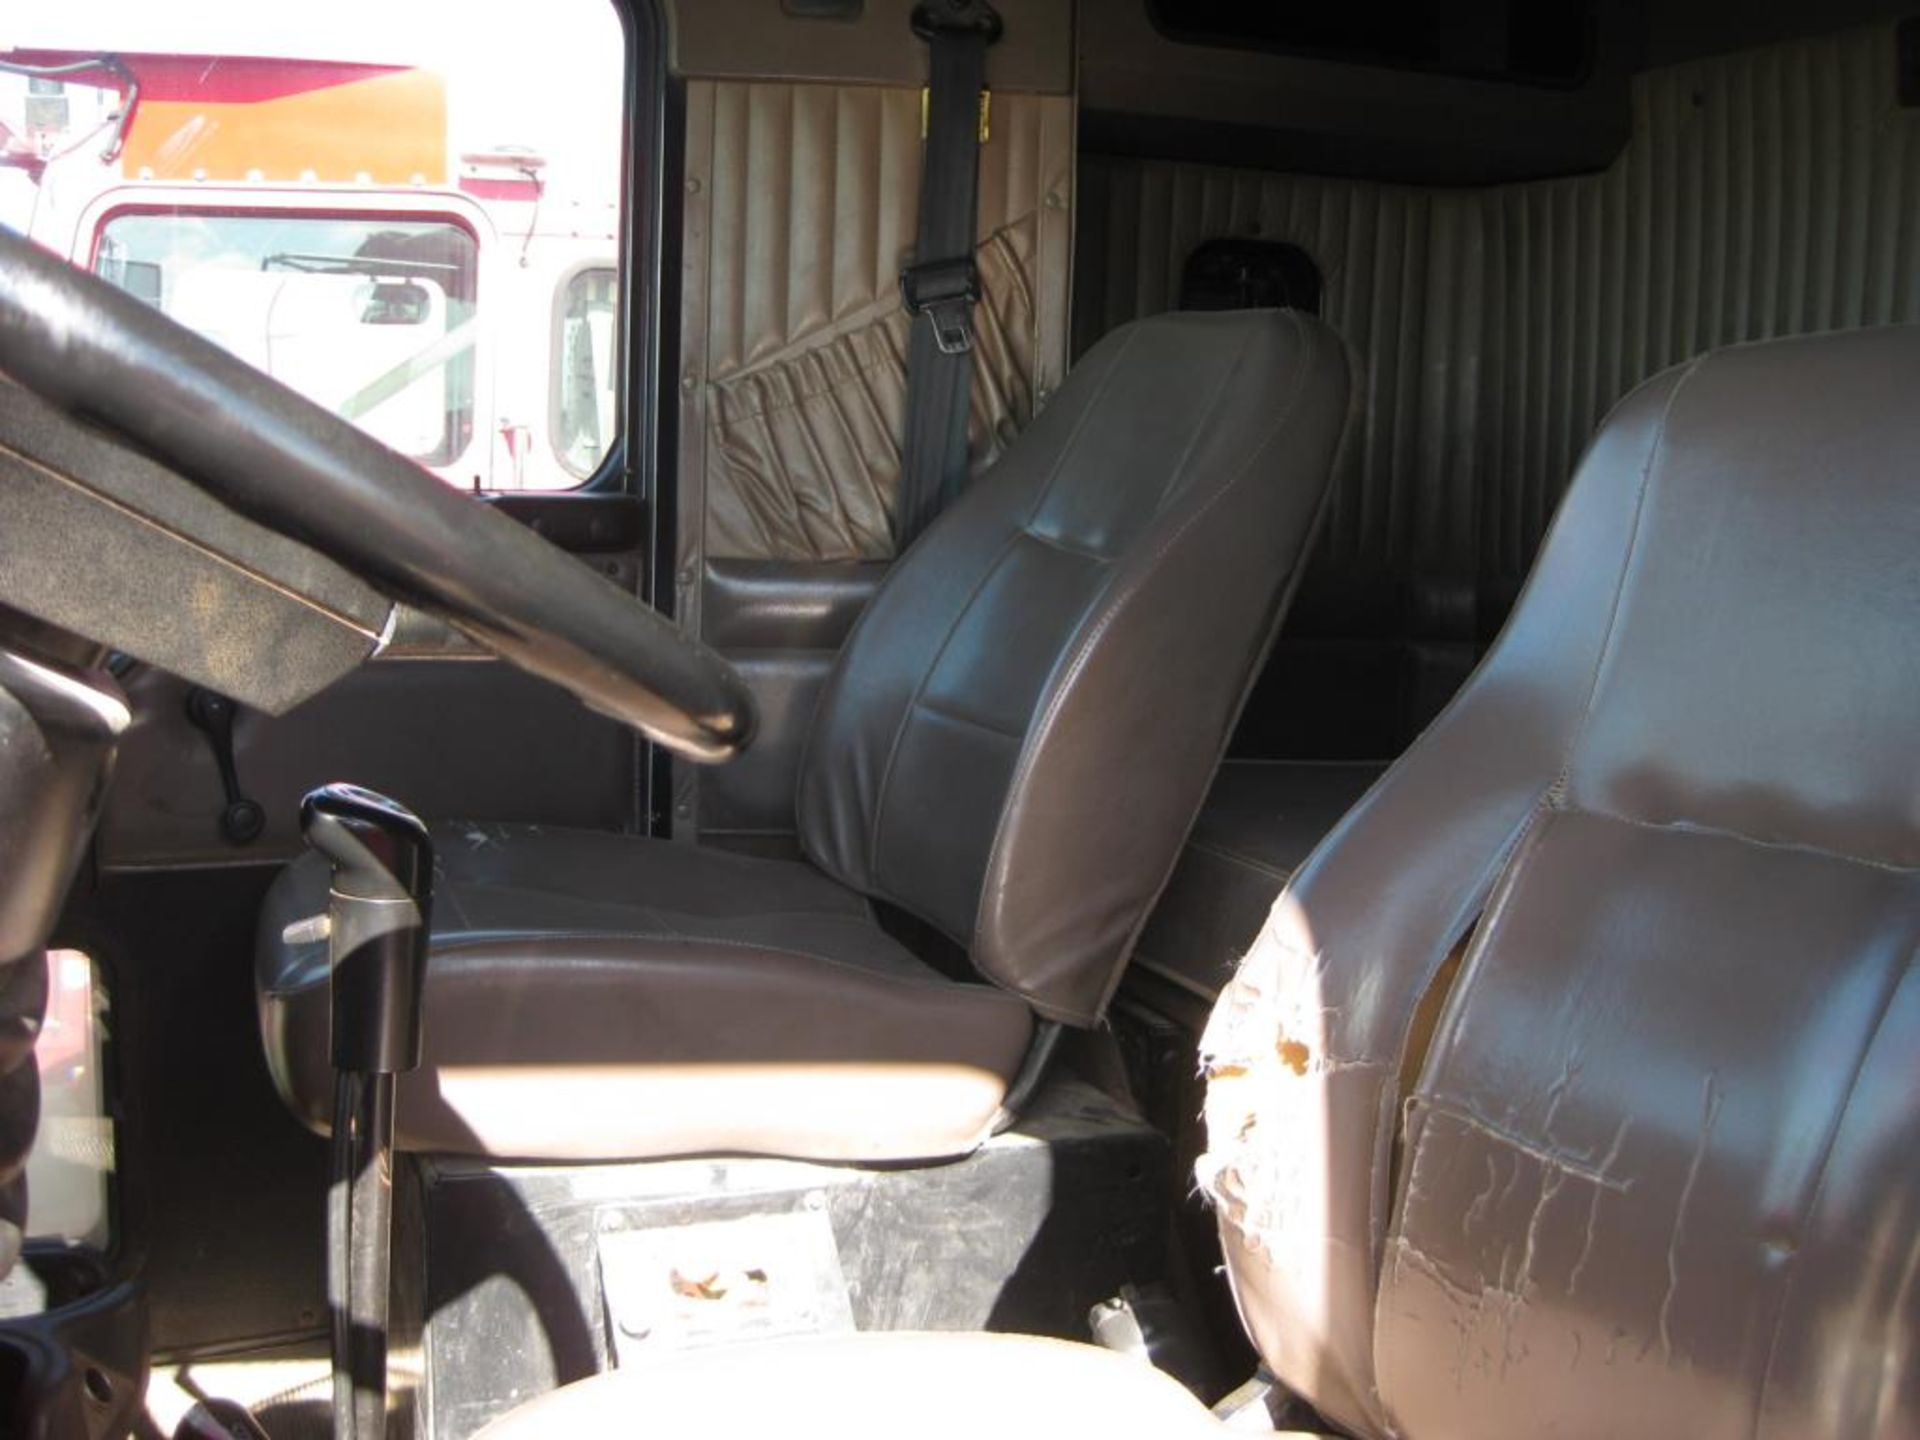 Truck - Image 11 of 24